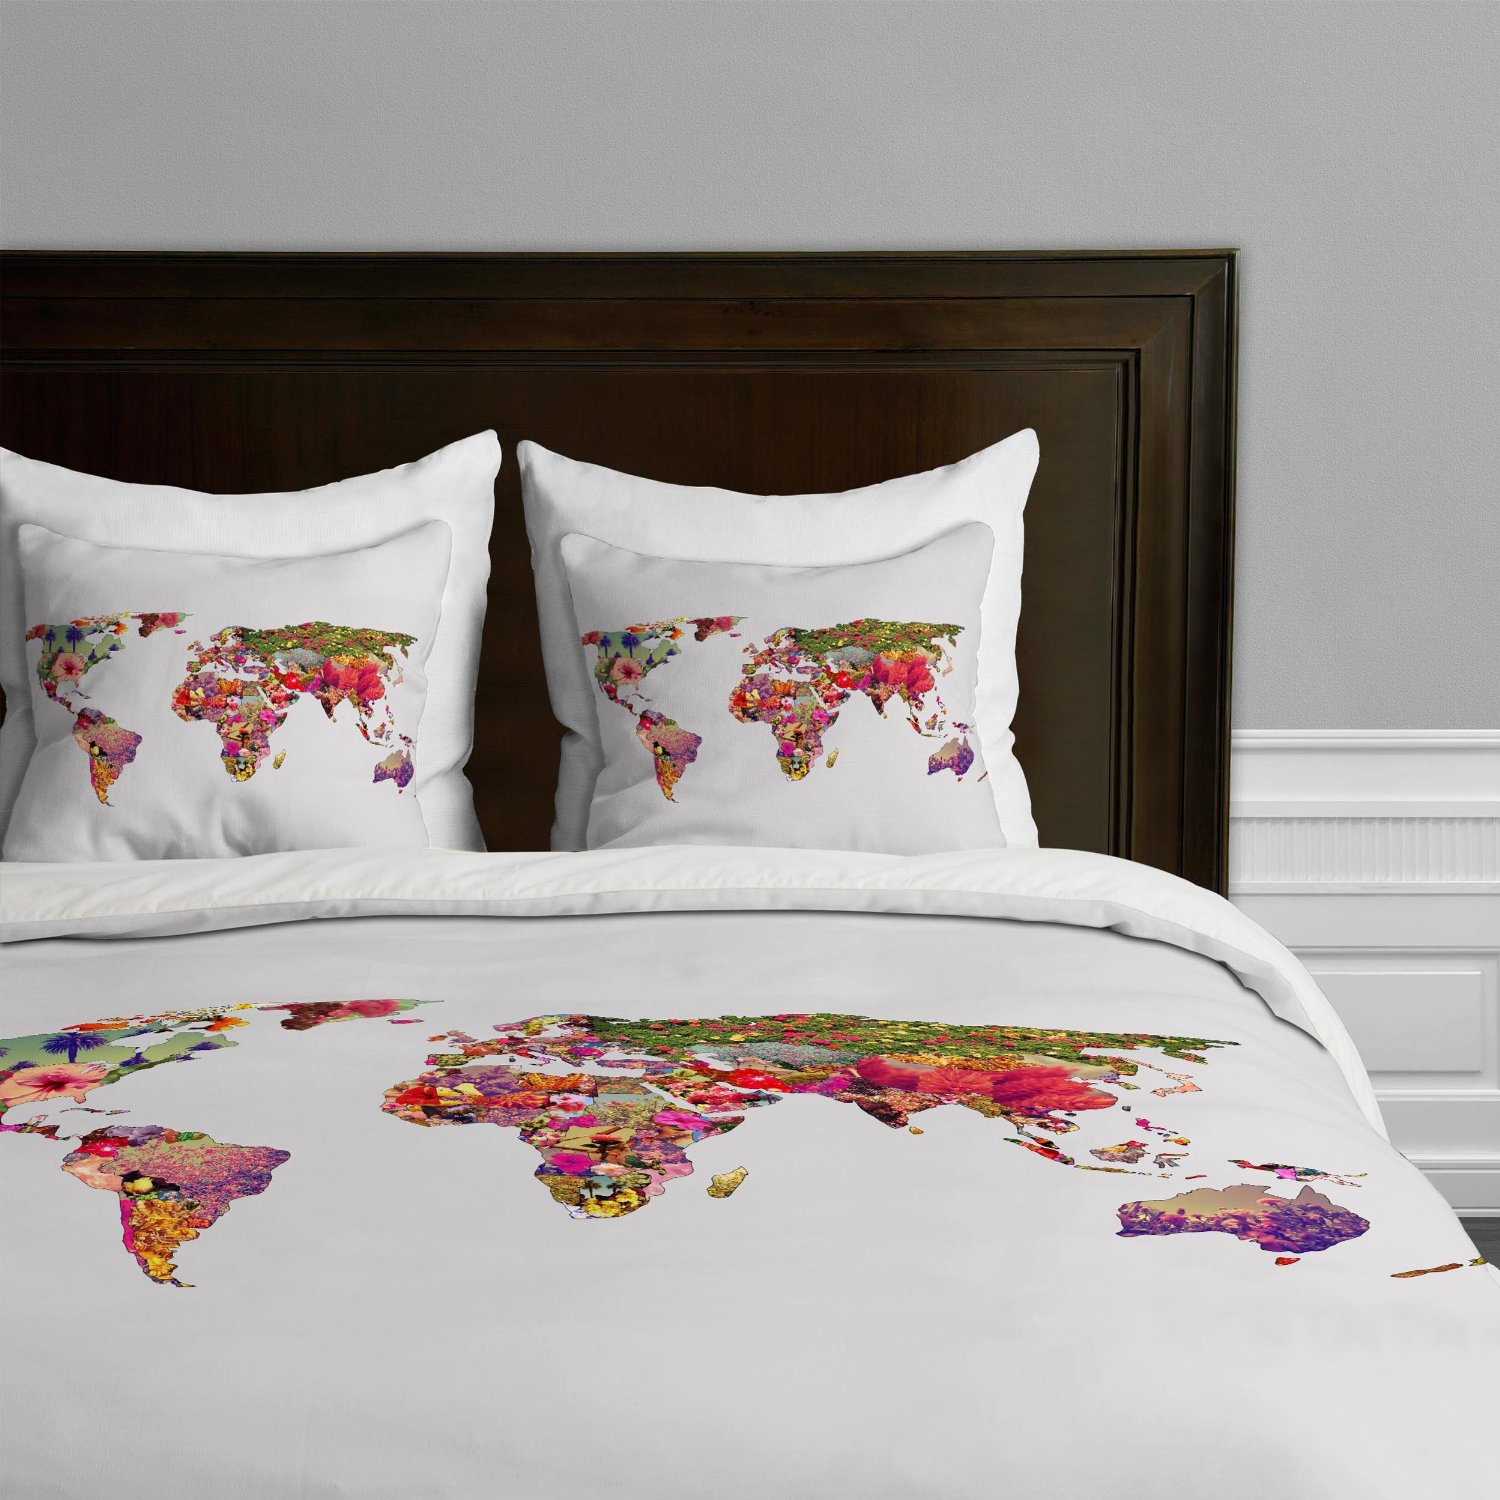 World map themed comforter and bedding sets world map themed duvet by deny in twin queen king size gumiabroncs Gallery